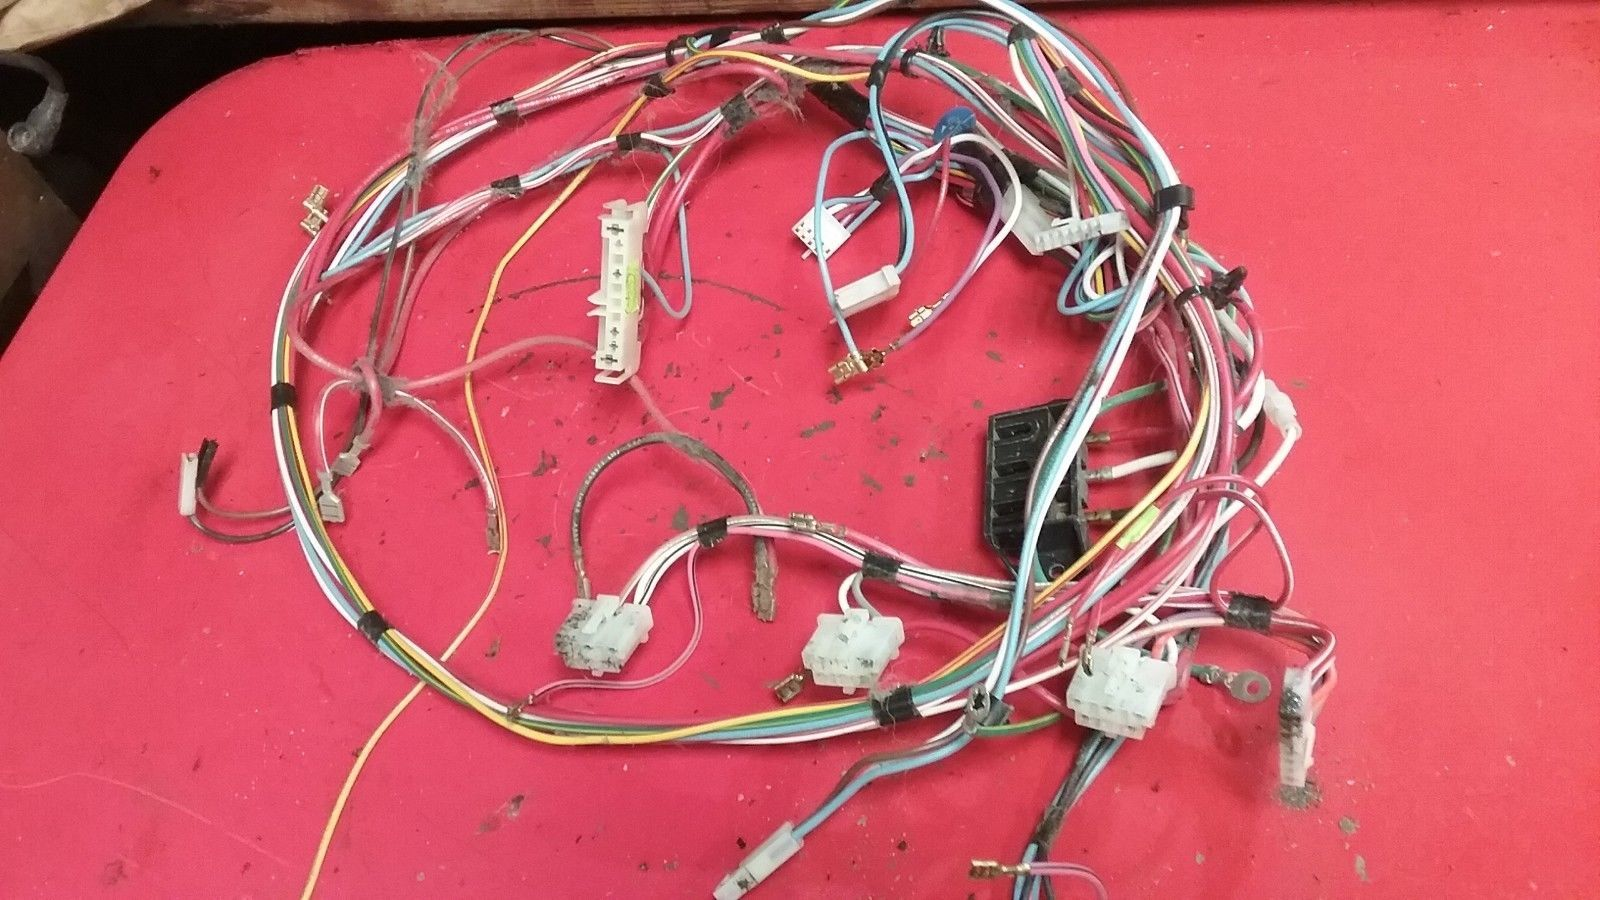 hight resolution of kenmore elite dryer wire harness 8530002 and 50 similar itemskenmore dryer wiring harness 21